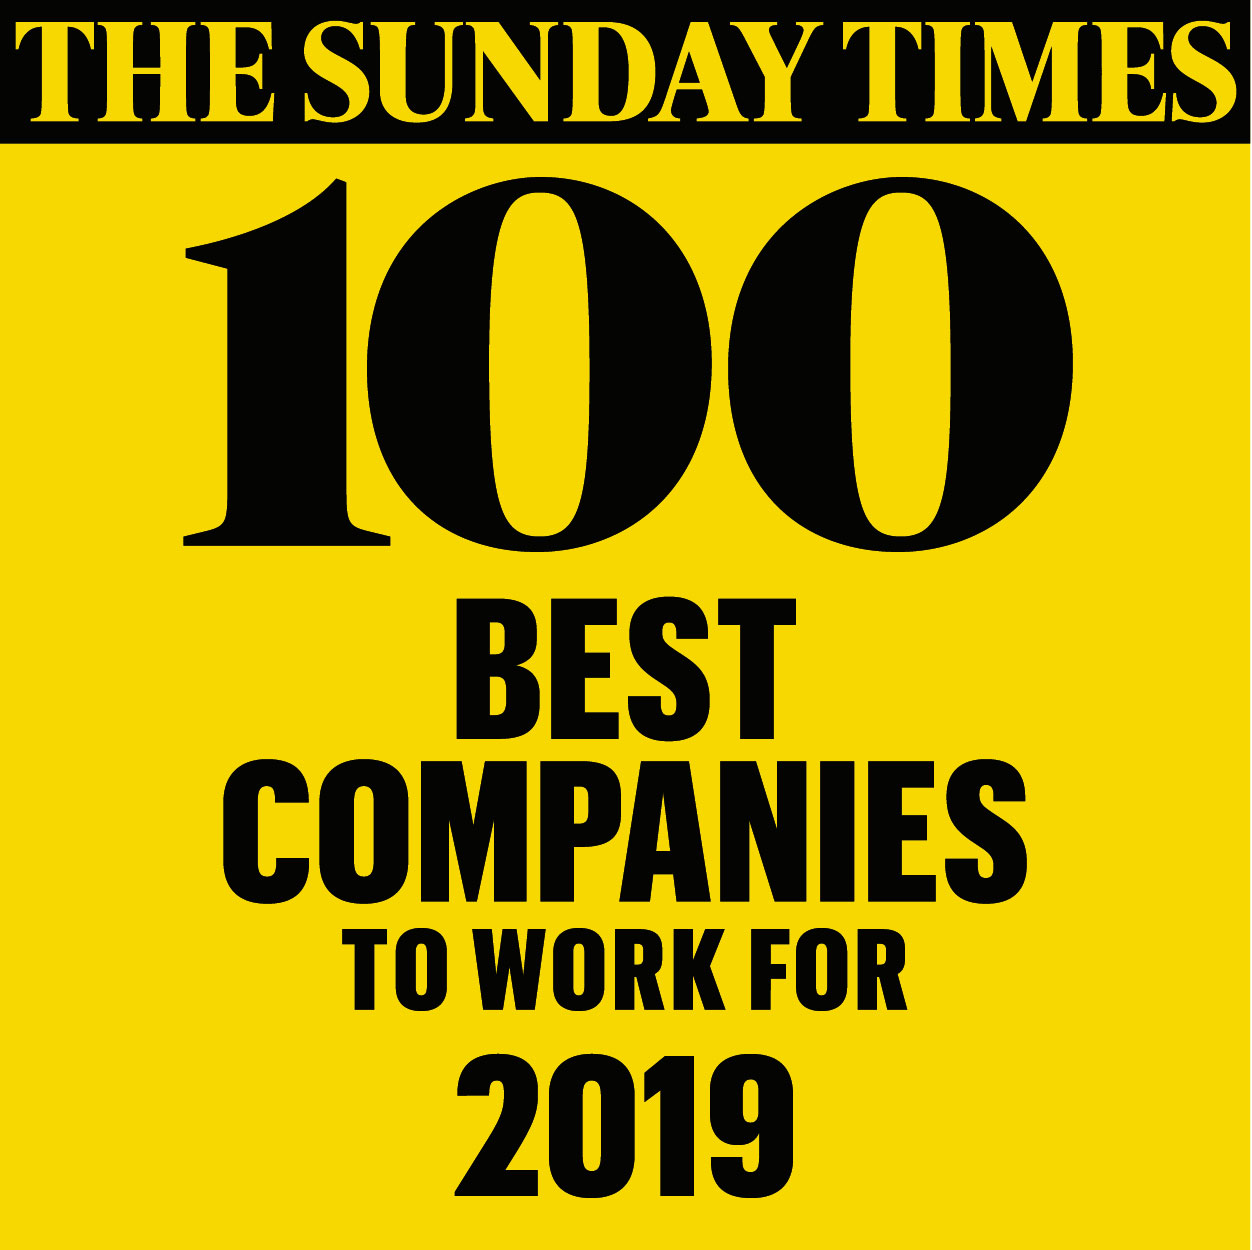 47th Best Company to Work For (mid-sized companies) The Sunday Times